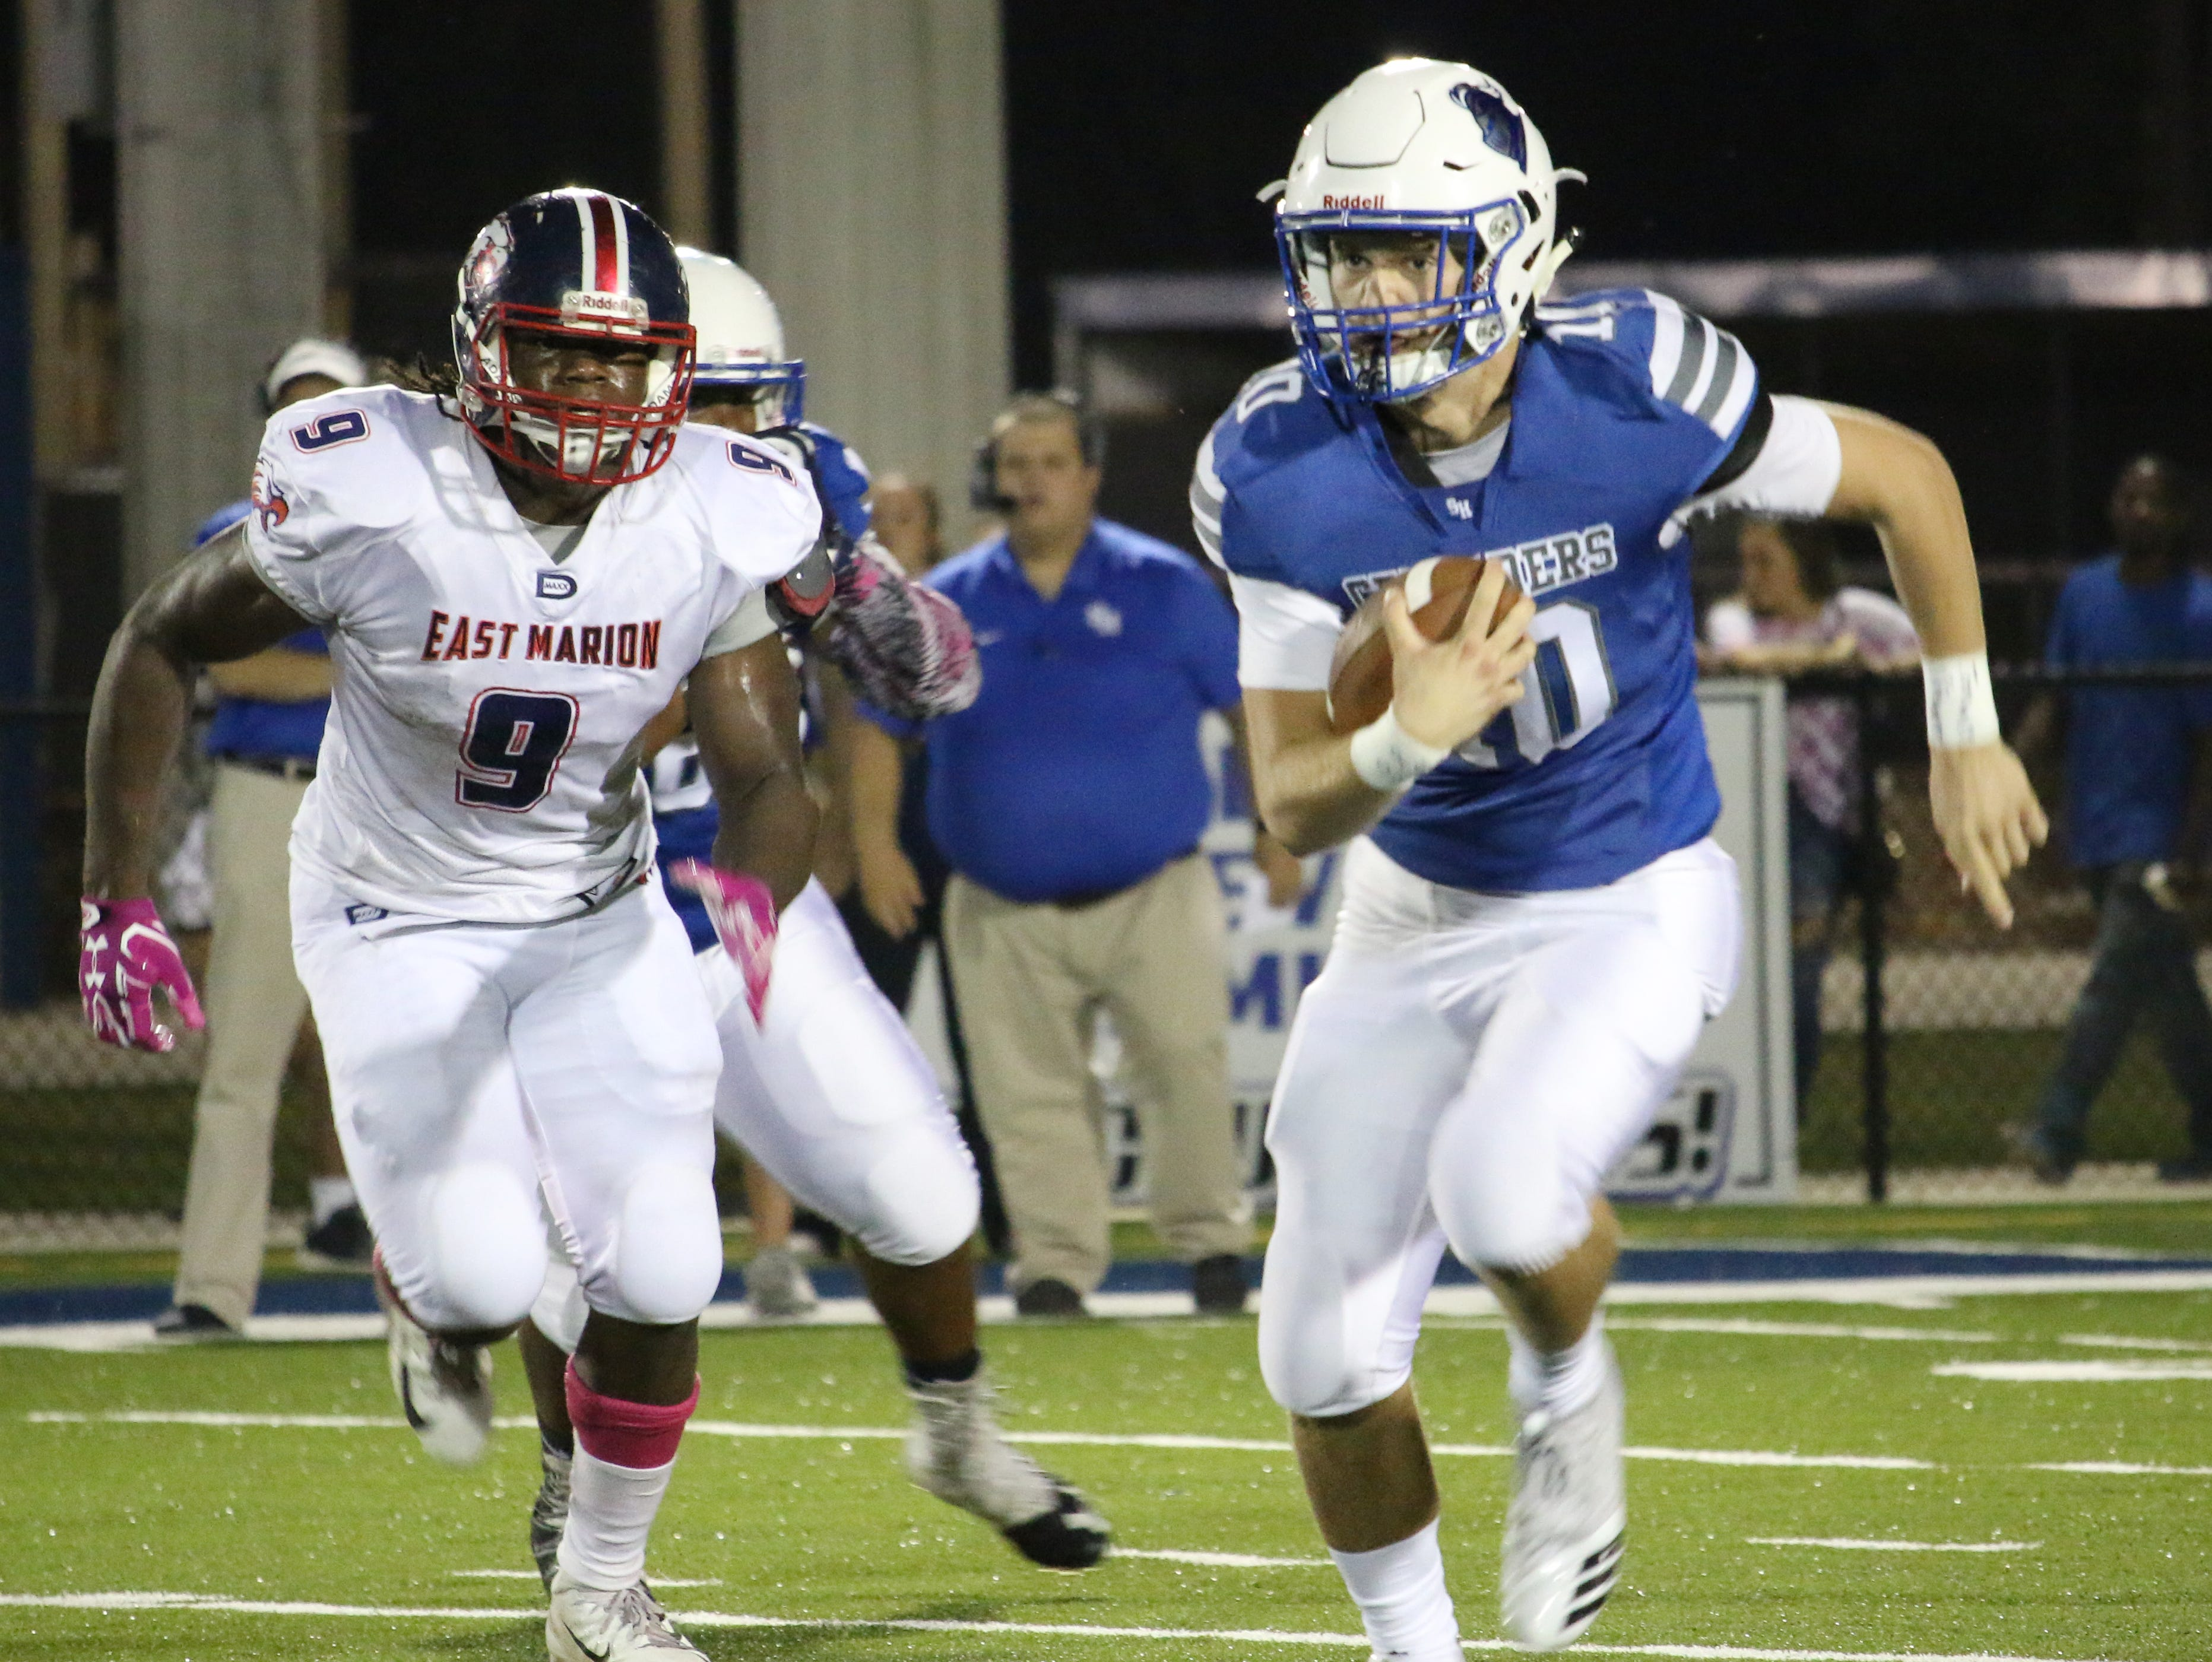 Sacred Heart's QB Zach Weatherell runs with the ball against East Marion on Friday.